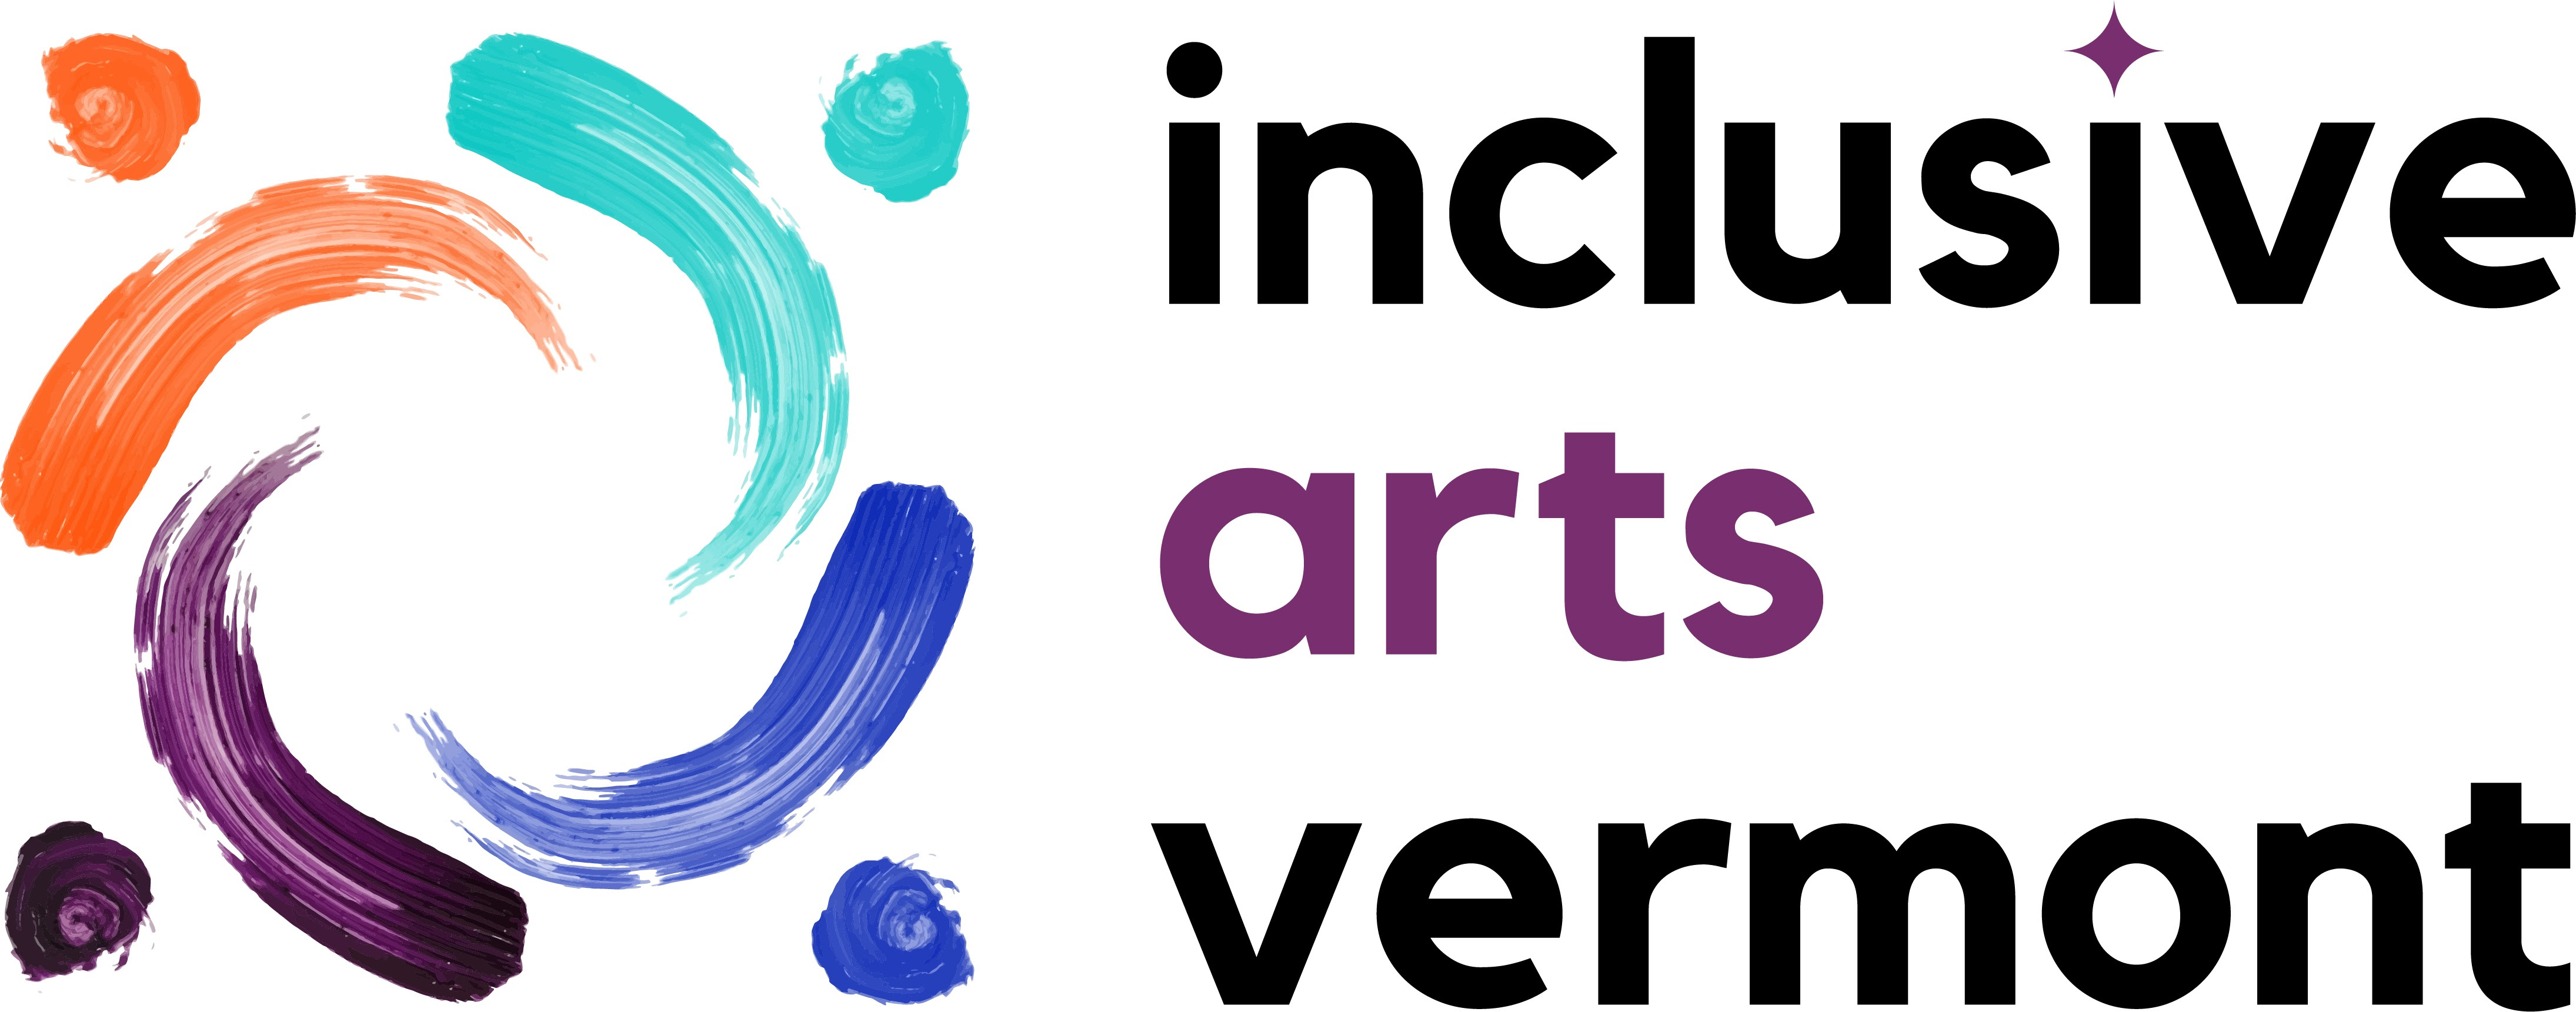 Inclusive Arts Vermont Logo - Horizontal - Full Color